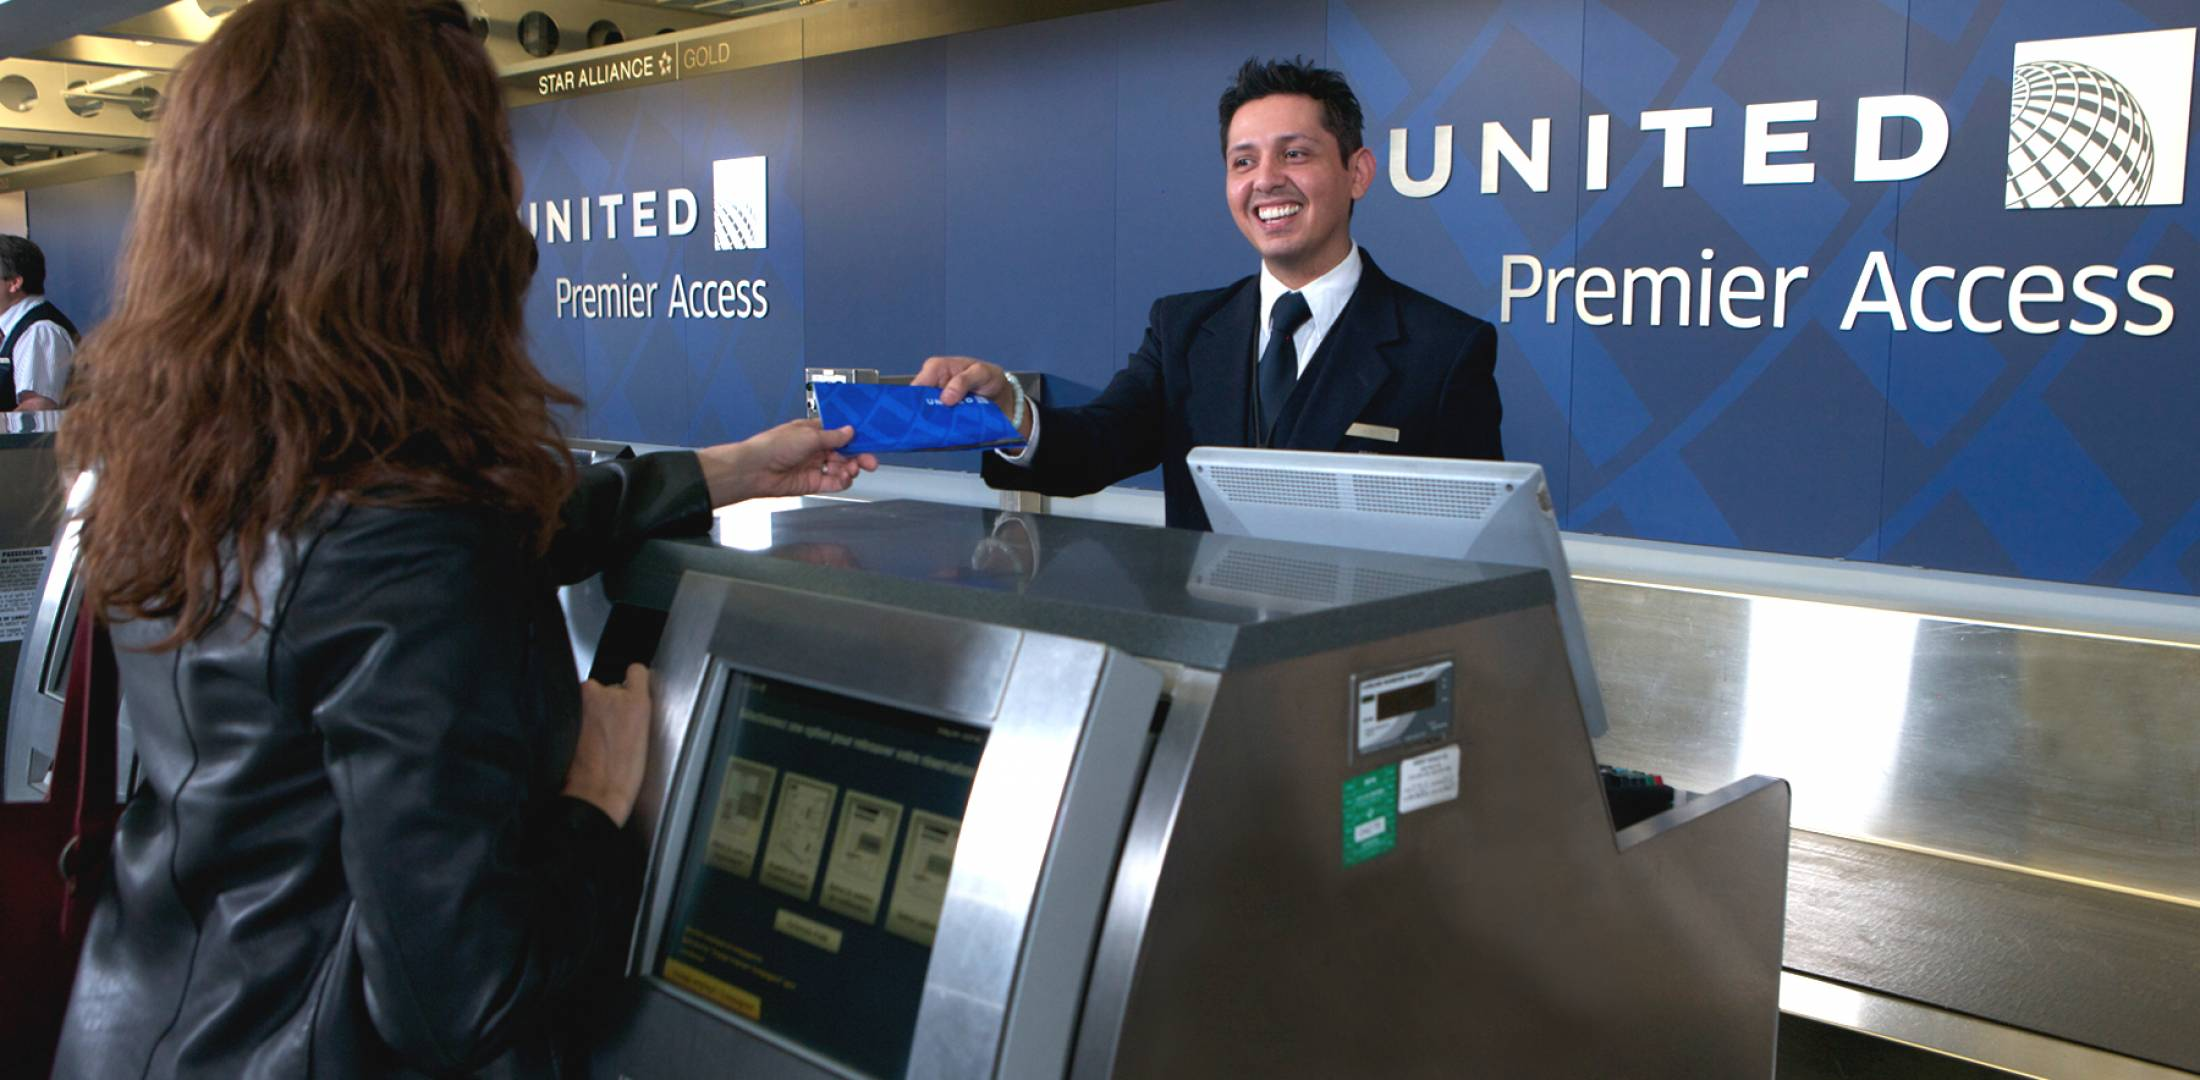 United check-in counter at Chicago O'Hare Airport